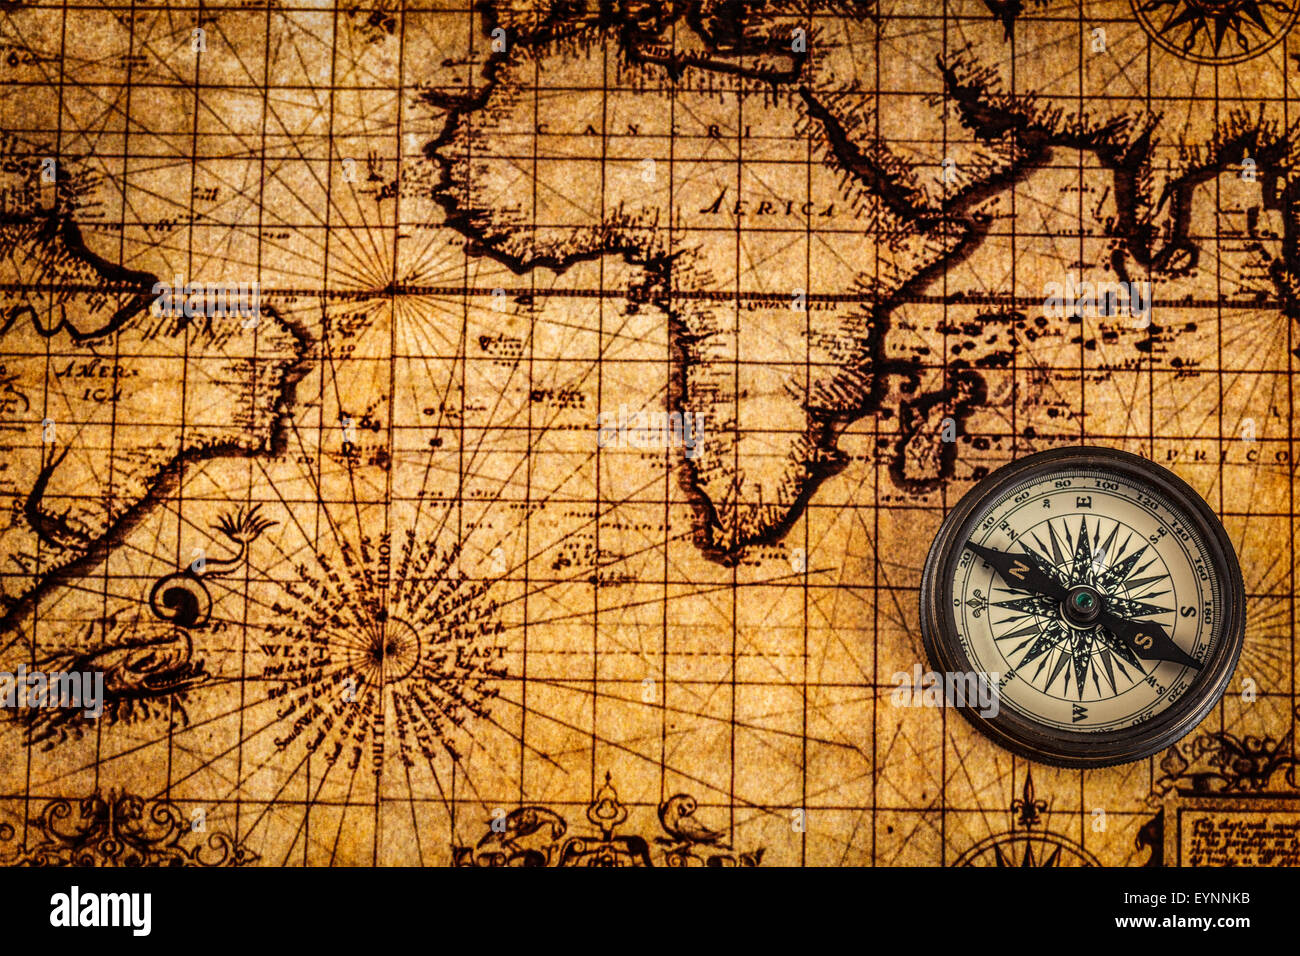 vintage world map with compass images galleries with a bite. Black Bedroom Furniture Sets. Home Design Ideas